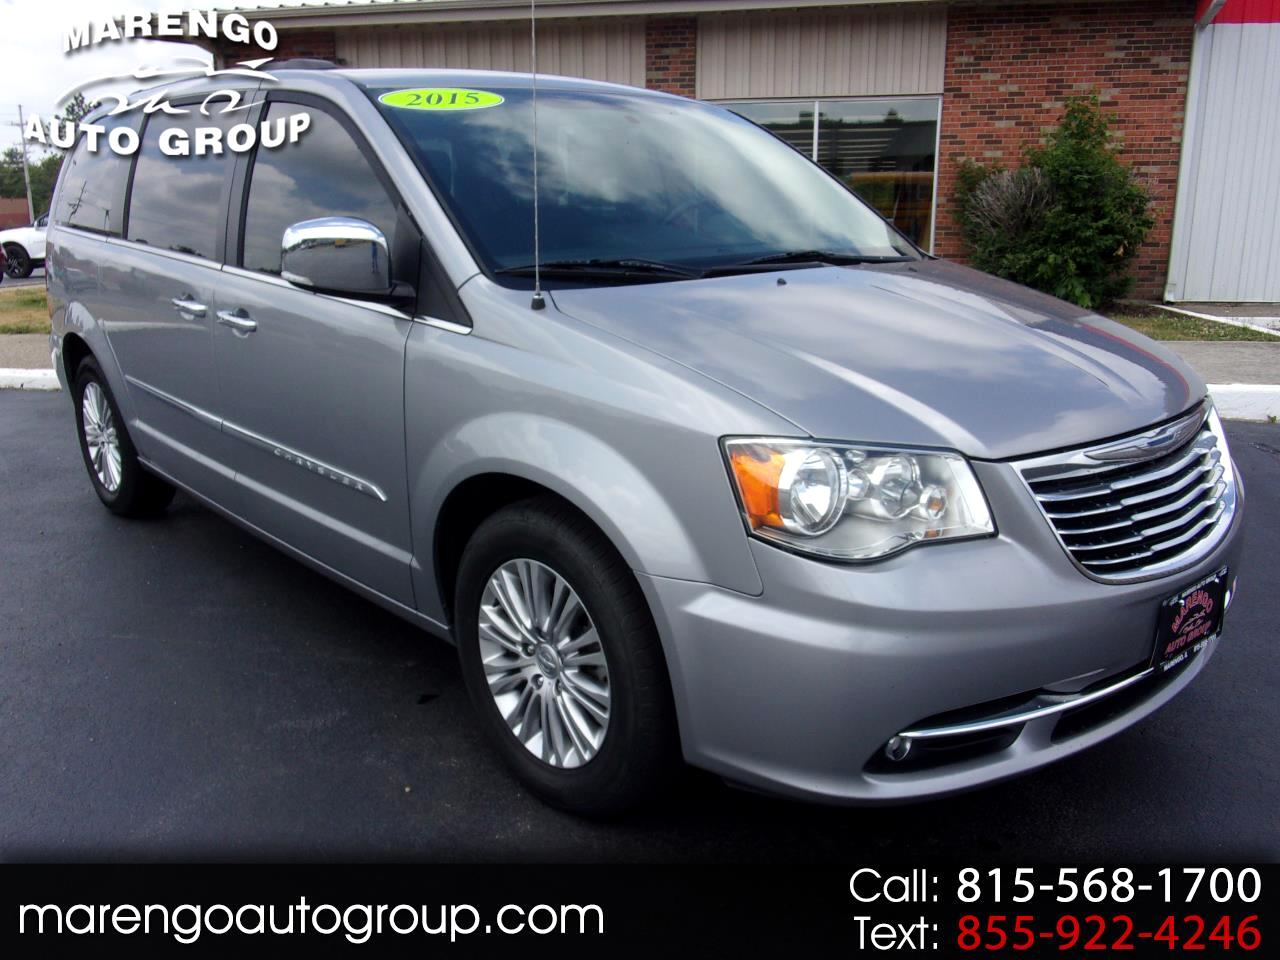 used 2015 Chrysler Town & Country car, priced at $14,996